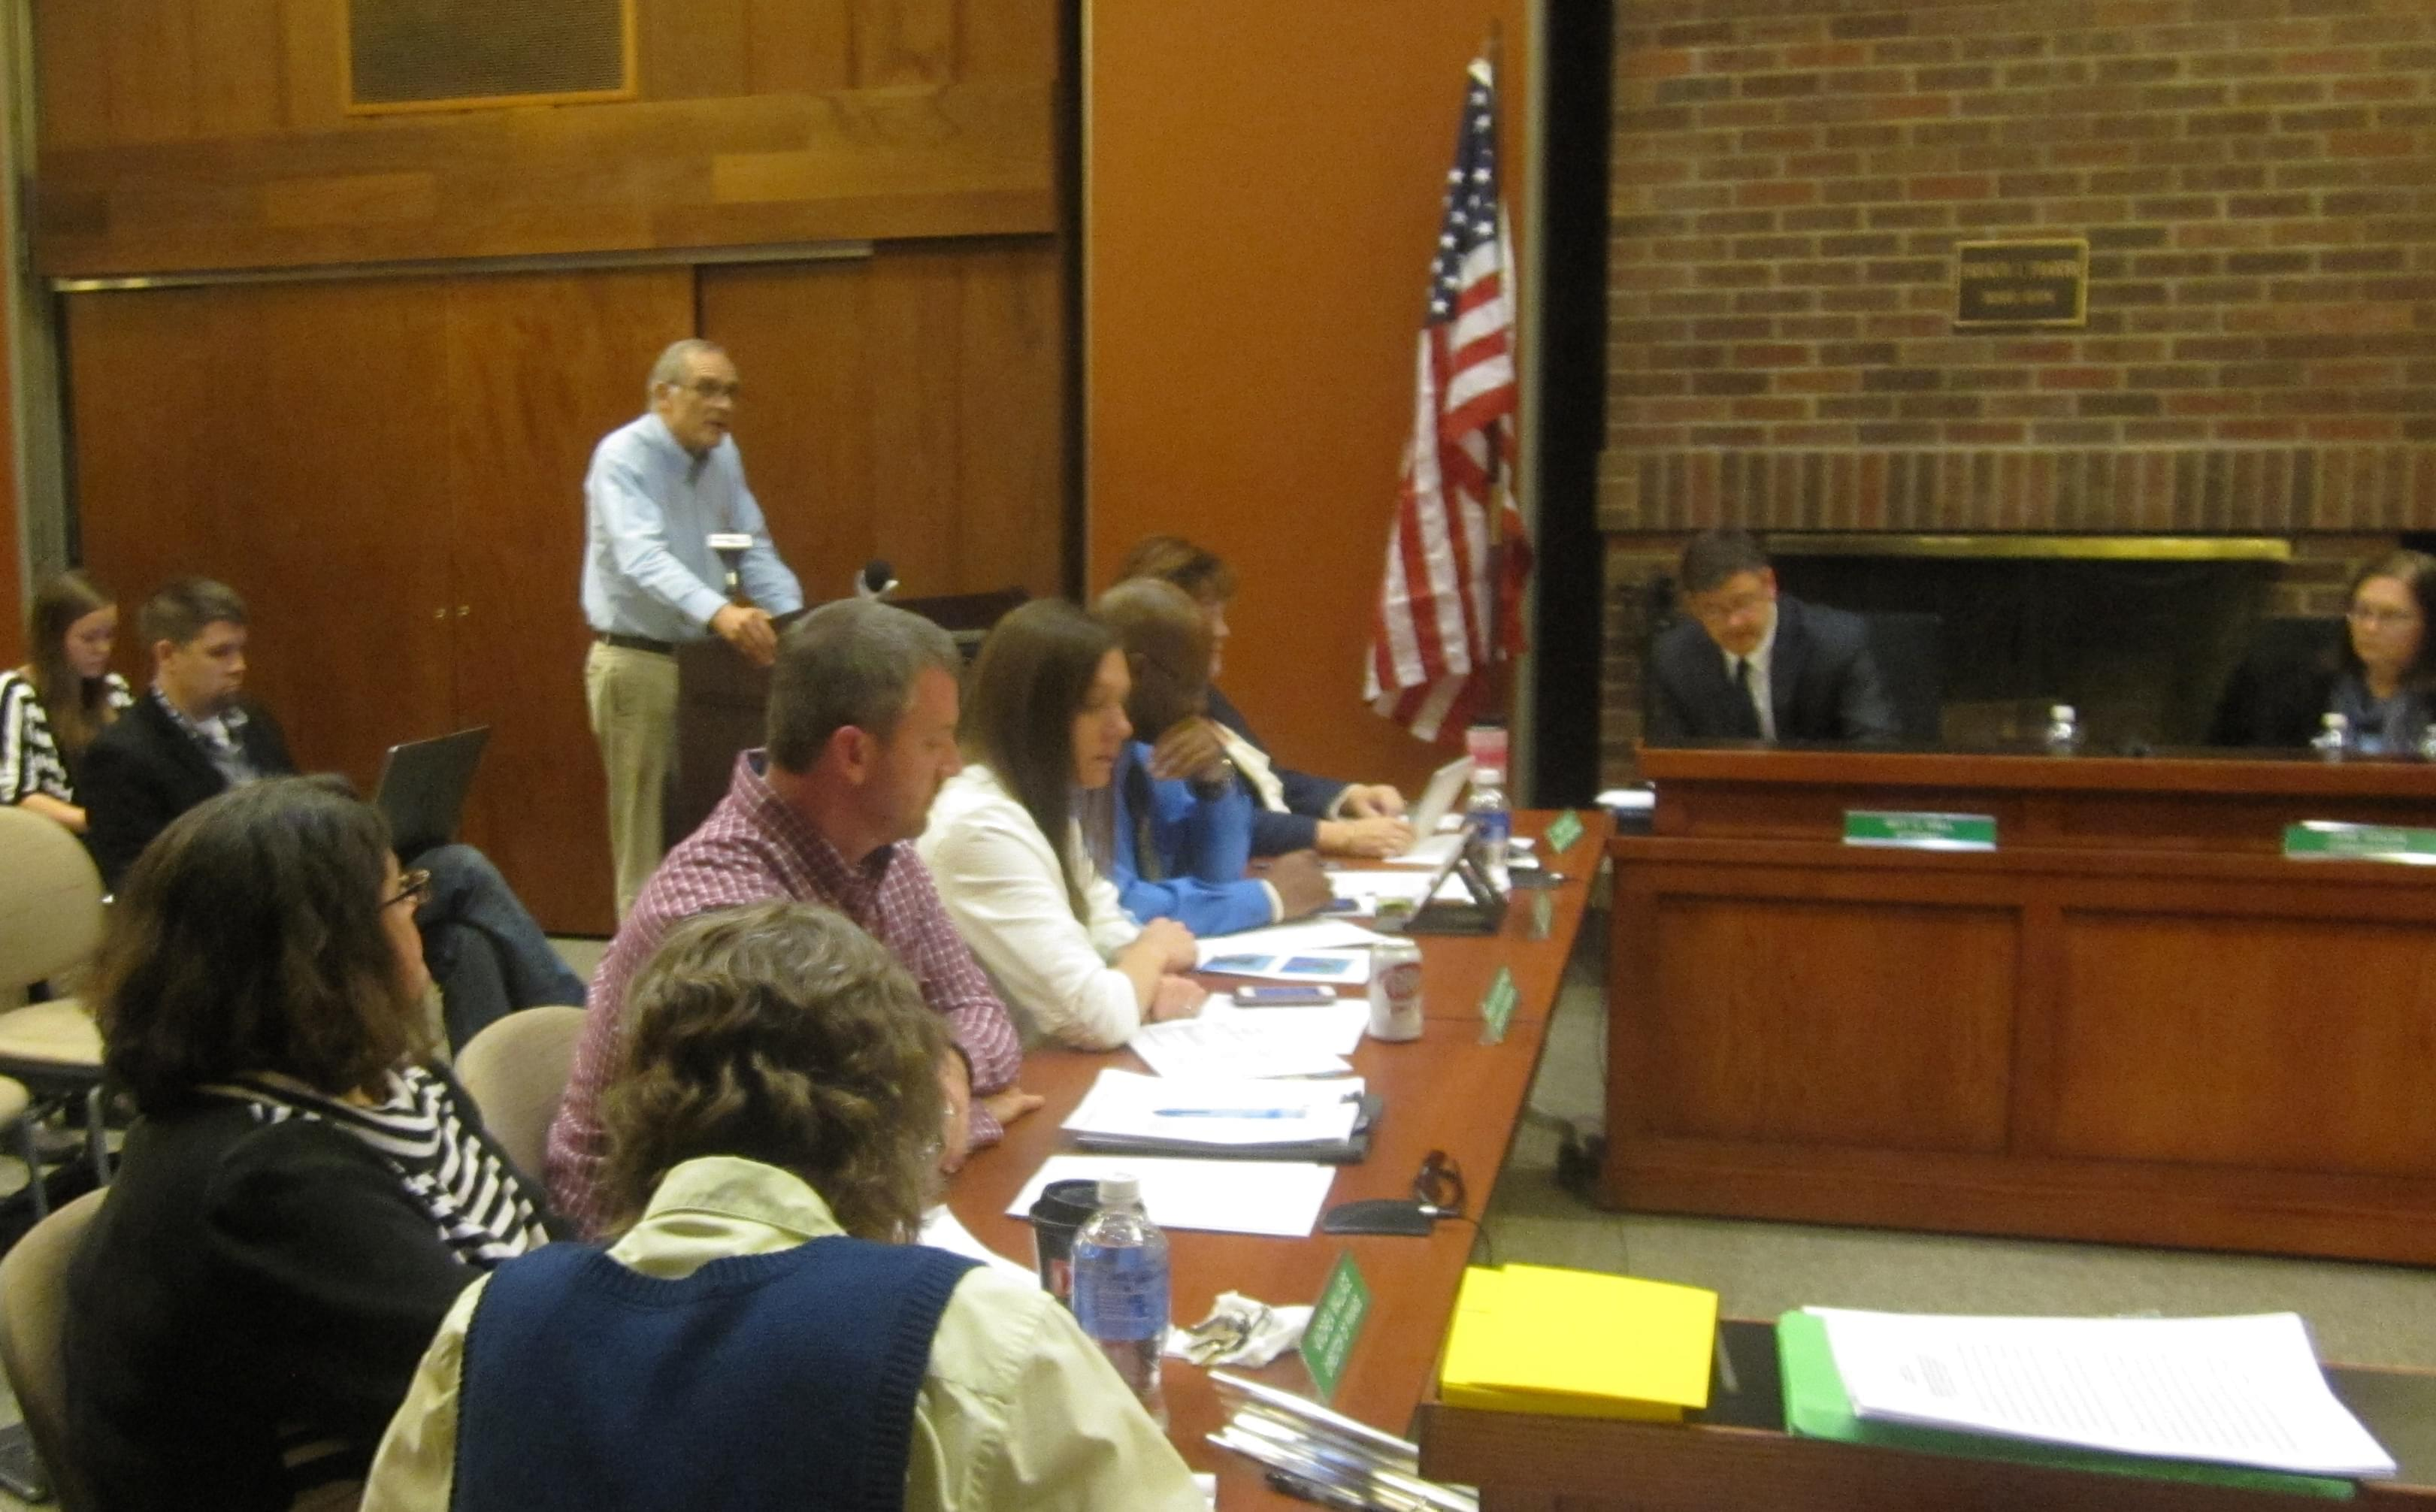 Former Champaign mayor Dan McCollum addresses the Champaign Park Board Wednesday night.